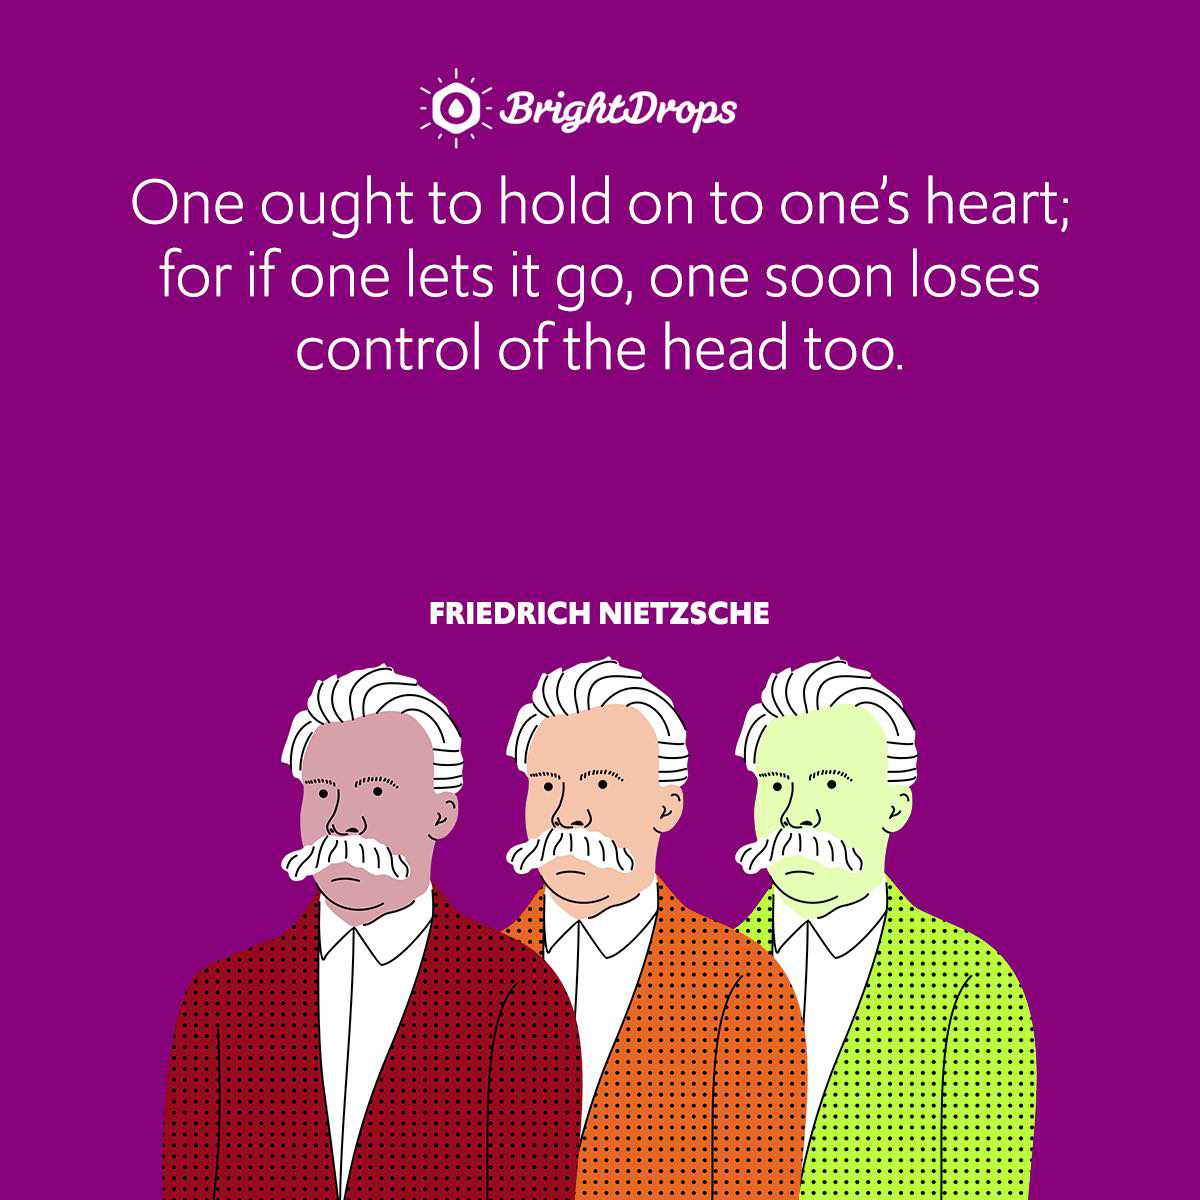 One ought to hold on to one's heart; for if one lets it go, one soon loses control of the head too.